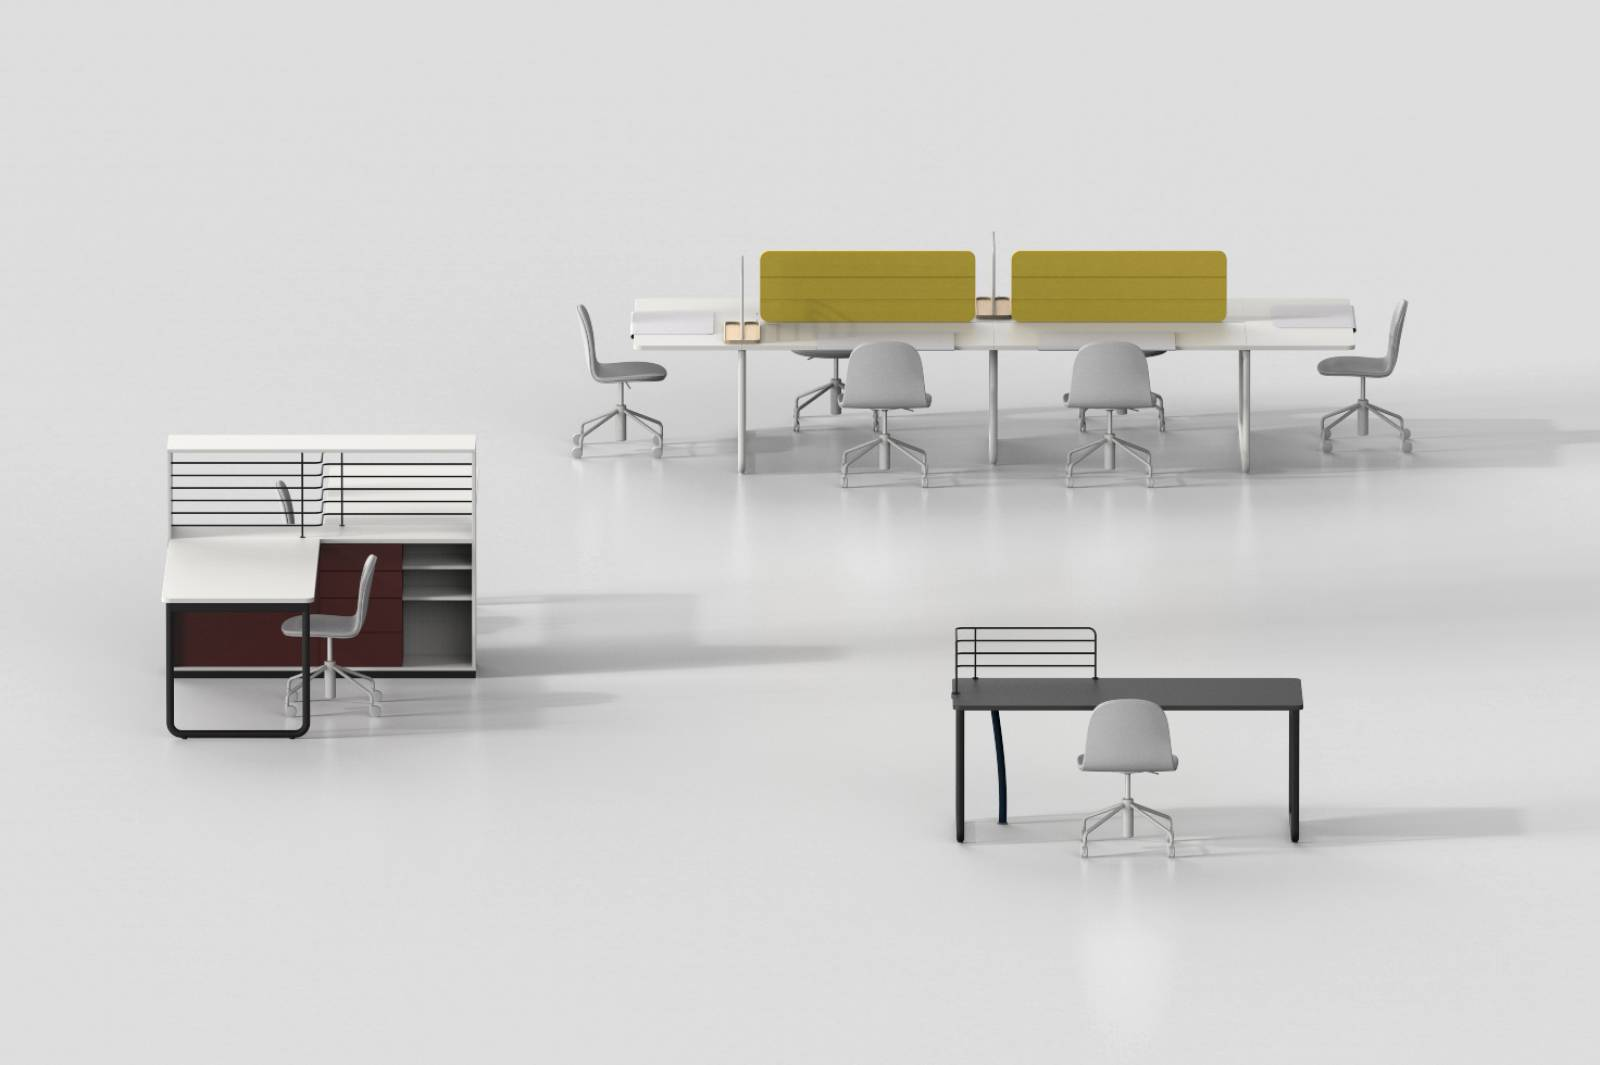 configuration possible avec la gamme Play and Work.Espace collectif ou individuel